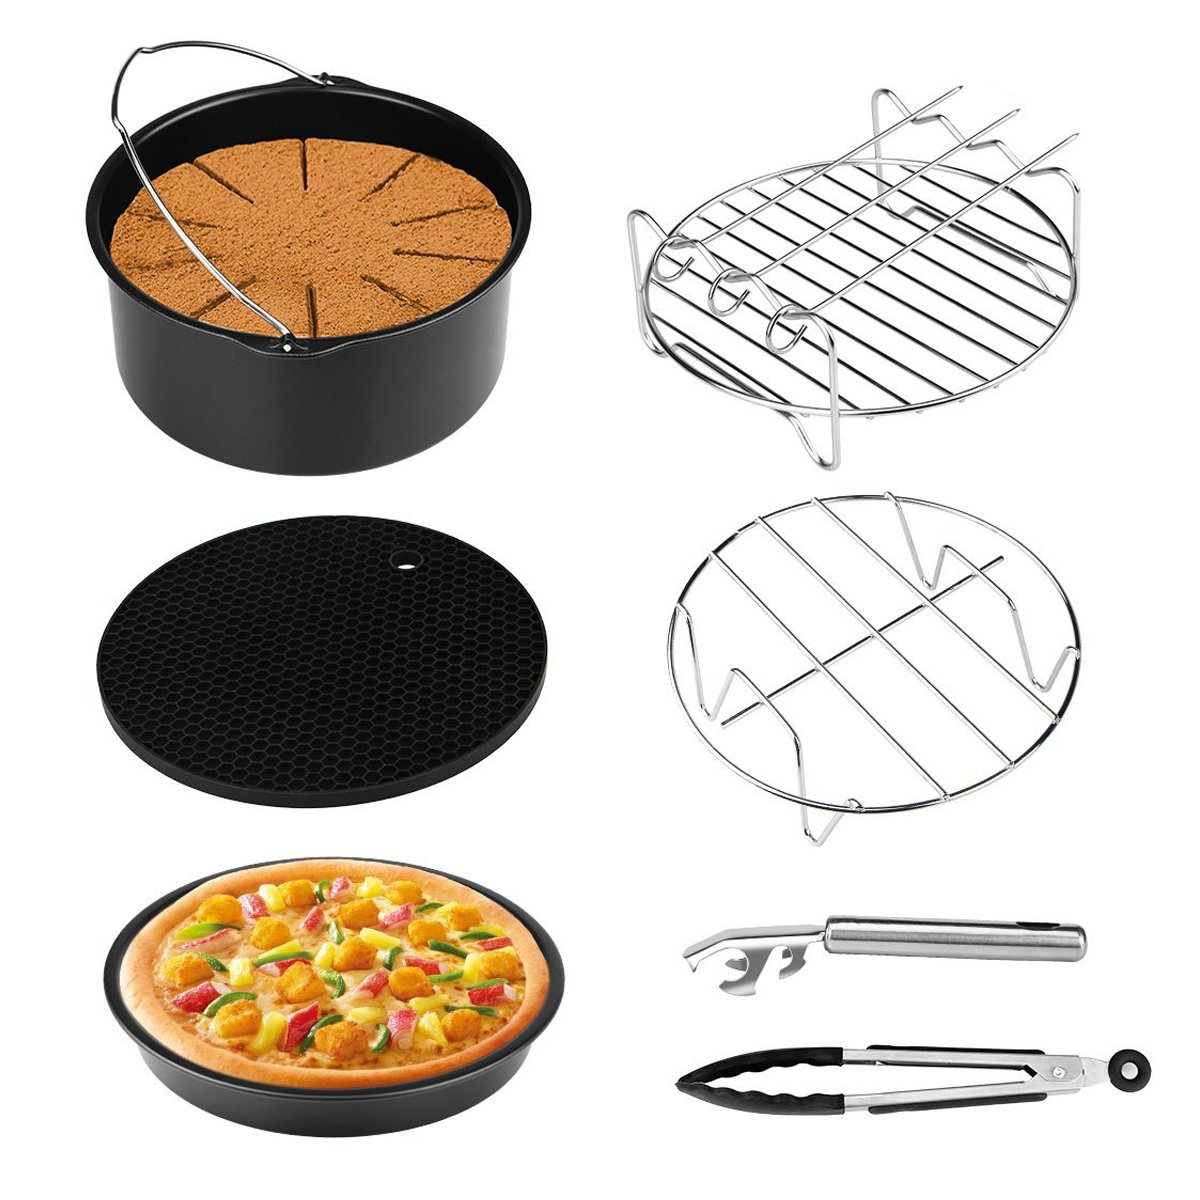 Air Fryer Accessories for Gowise Phillips and Cozyna, 7 Pcs with Cake Barrel/Pizza Pan/Silicone Mat/Metal Holder/Skewer Rack/Kitchen Tong/Bowl Clip, Fit all 3.7QT-5.3QT-5.8QT